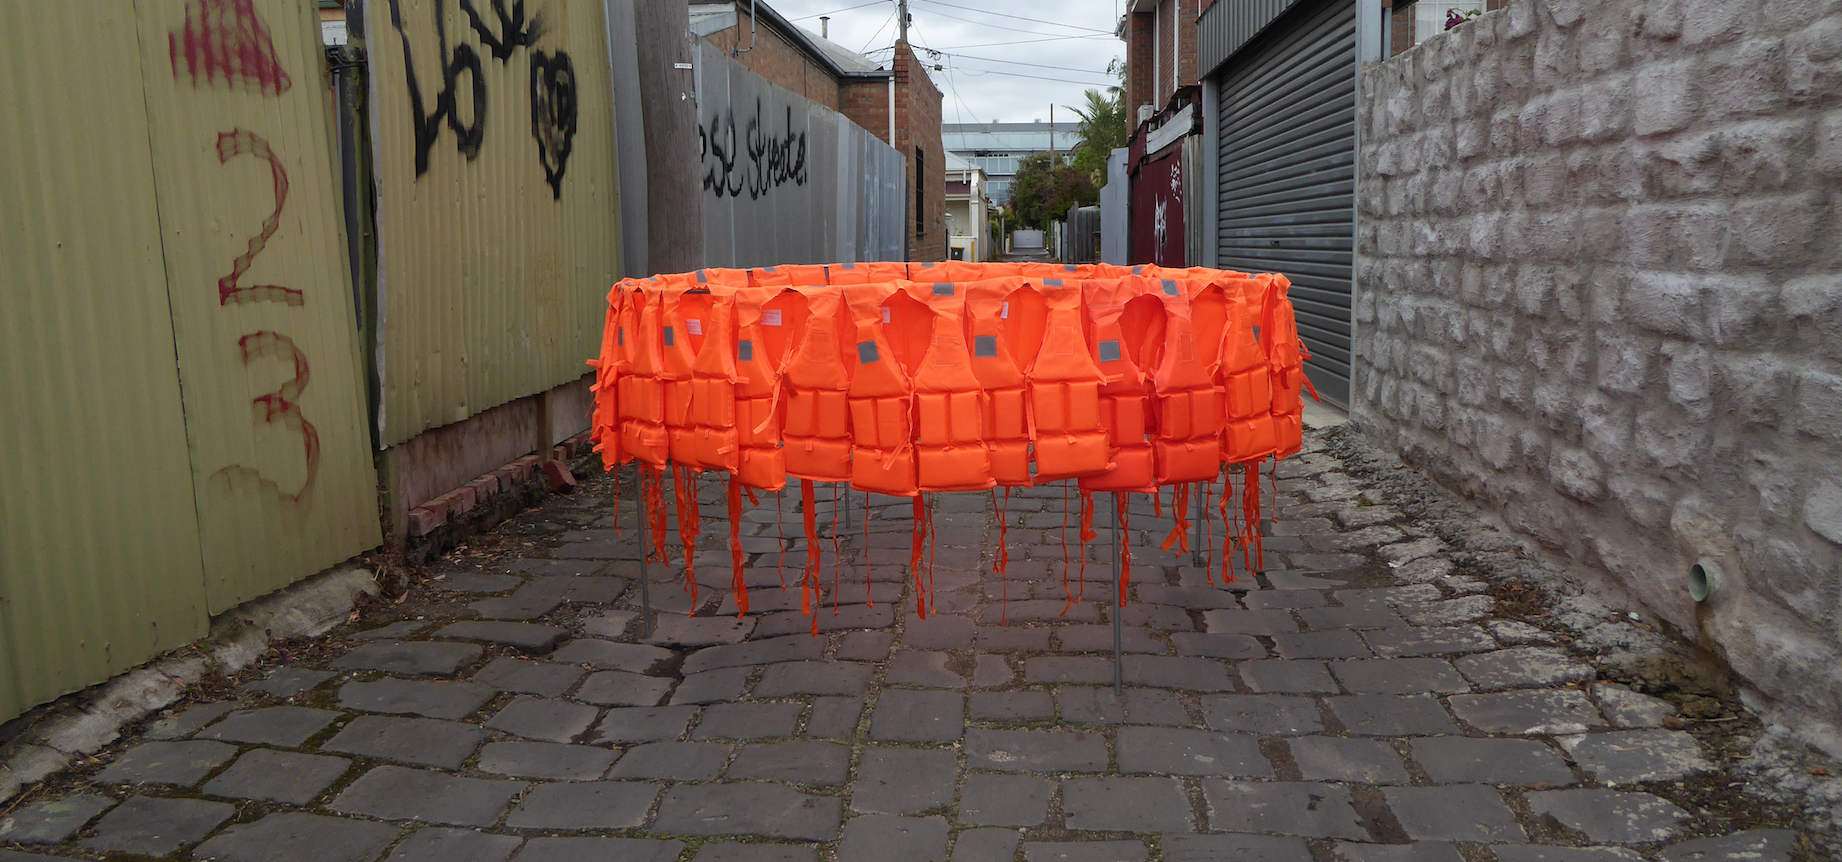 Déplacement (Smuggling Pod), 2017. Life-jackets, Steel, 200cm diameter x 100 cm / Courtesy of the artist.